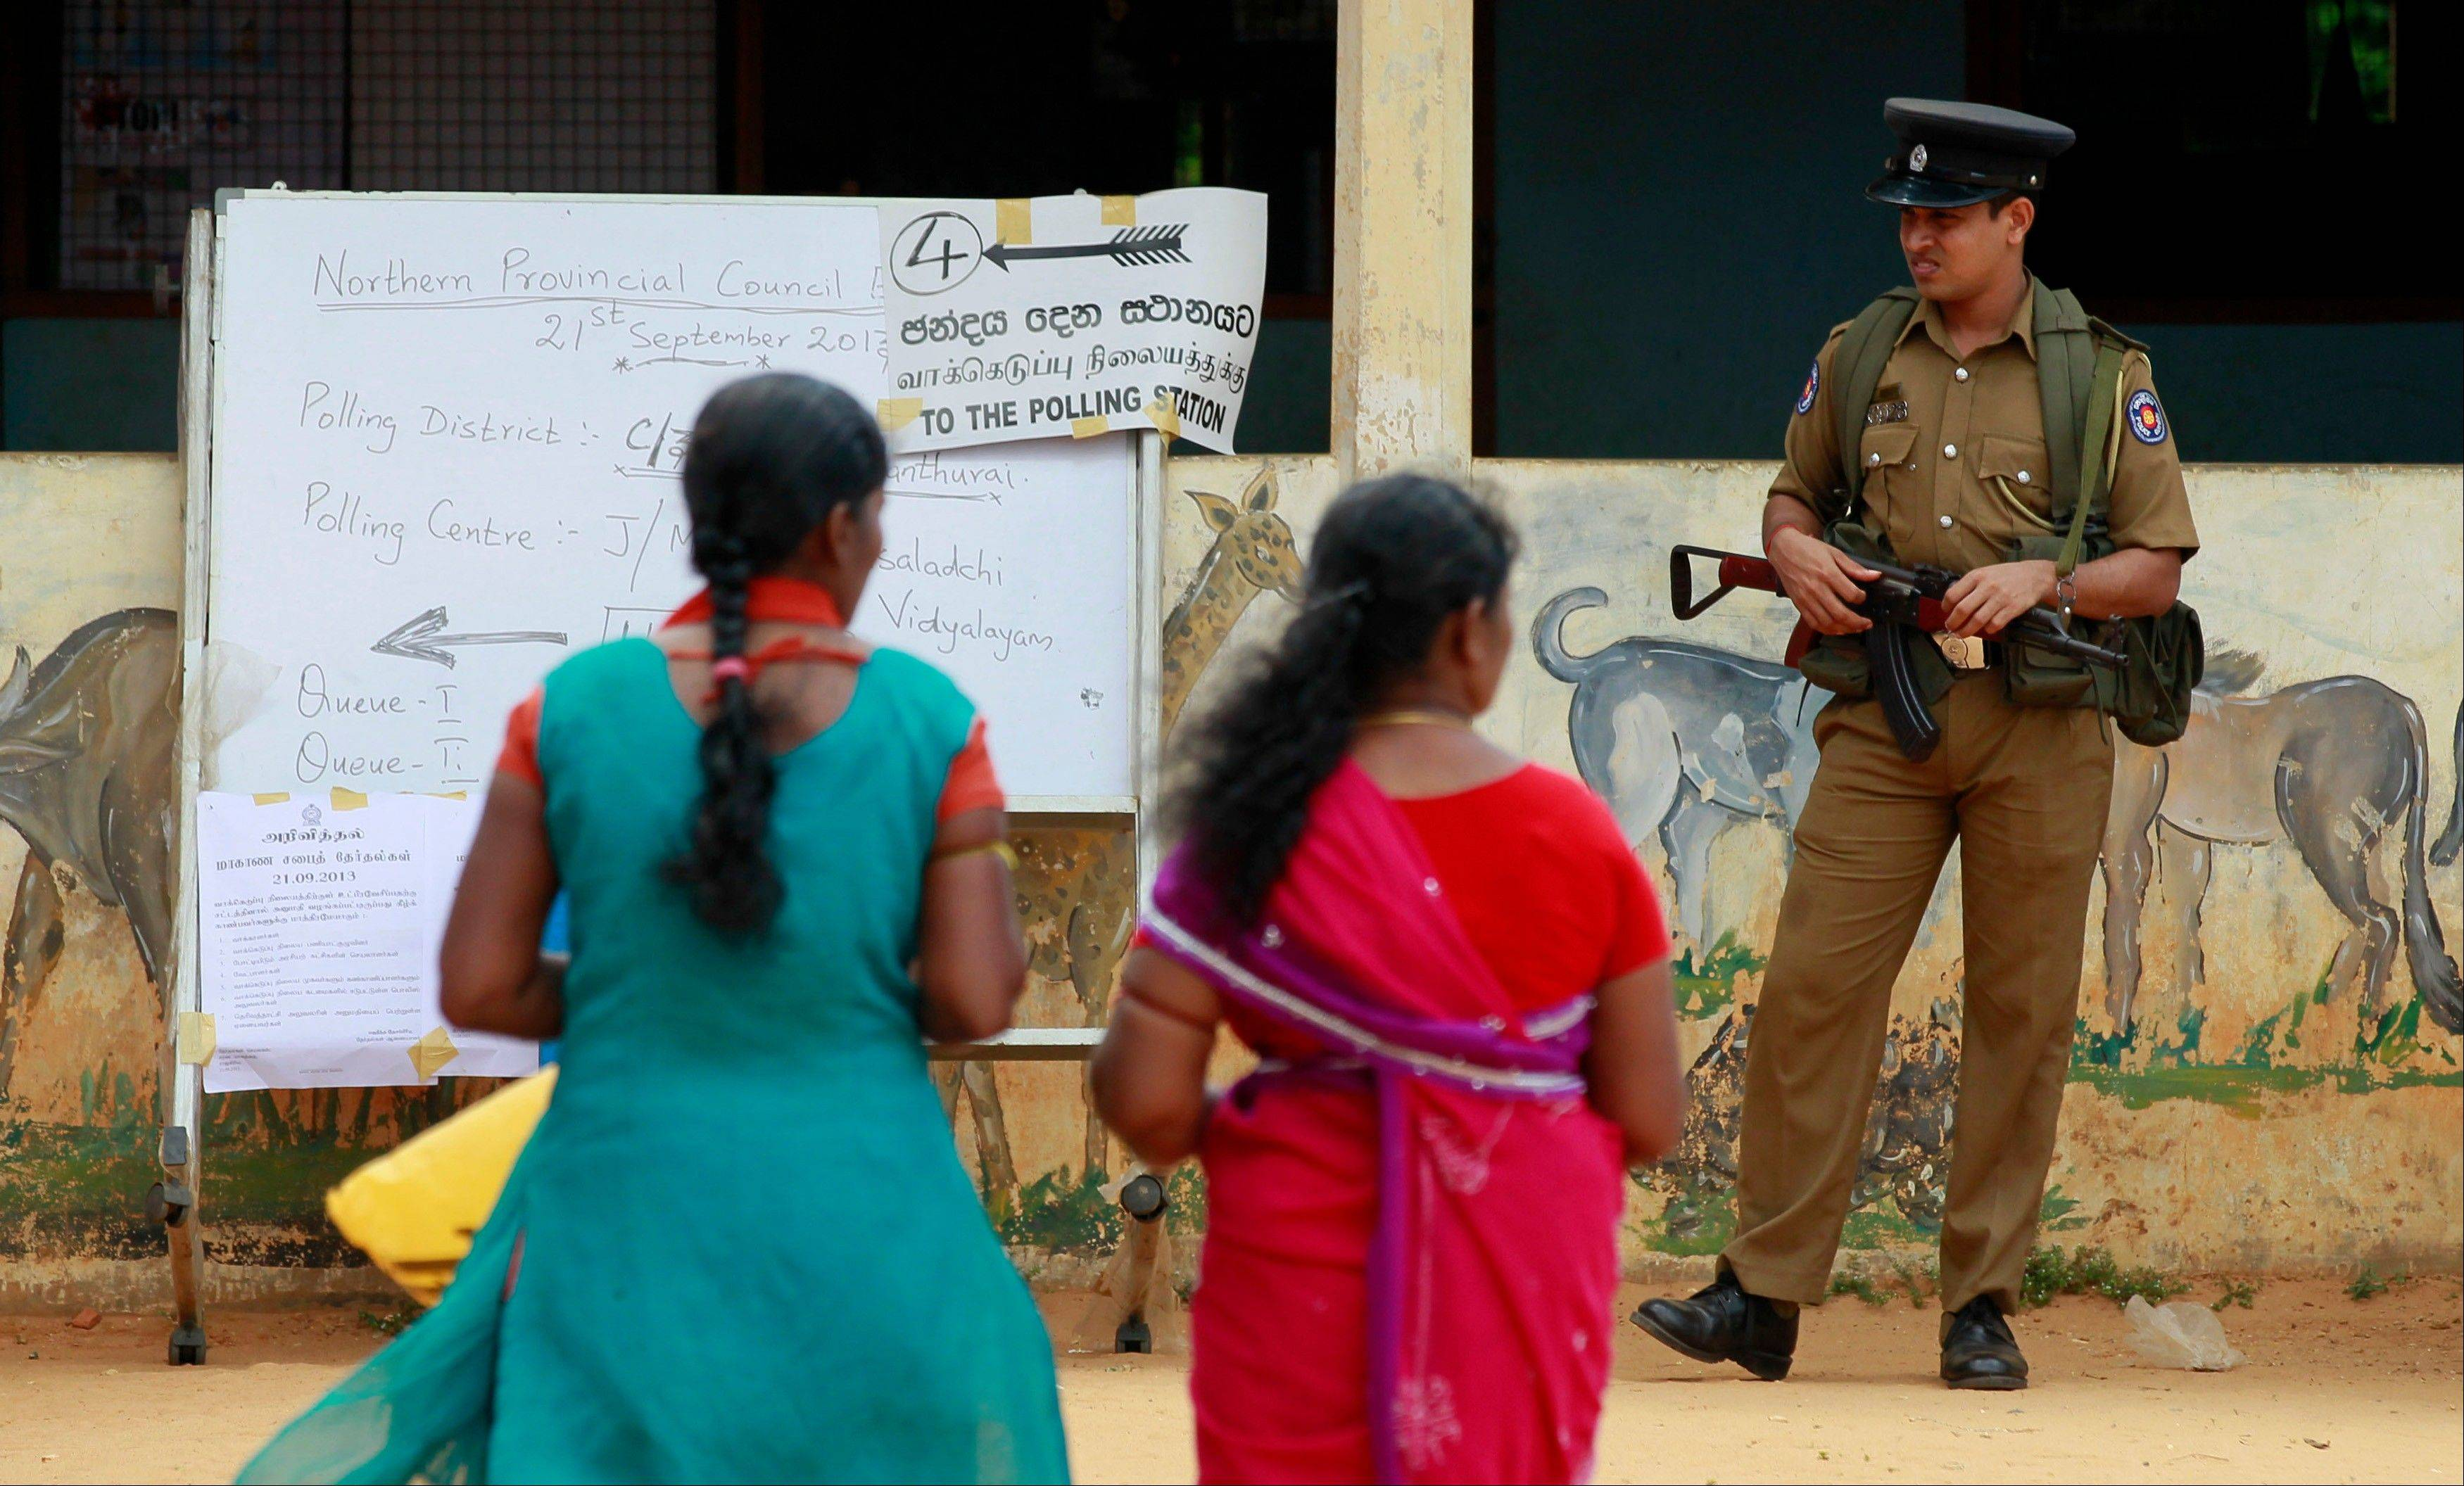 A Sri Lankan police officer stands guard as ethnic Tamils women arrive to cast their vote at a polling station during the northern provincial council election in Jaffna, Sri Lanka, Saturday, Sept. 21. Ethnic Tamil voters in Sri Lanka�s war-ravaged north went to the polls Saturday to form their first functioning provincial government, hoping it is the first step toward wider regional autonomy after decades of peaceful struggle and a bloody civil war.